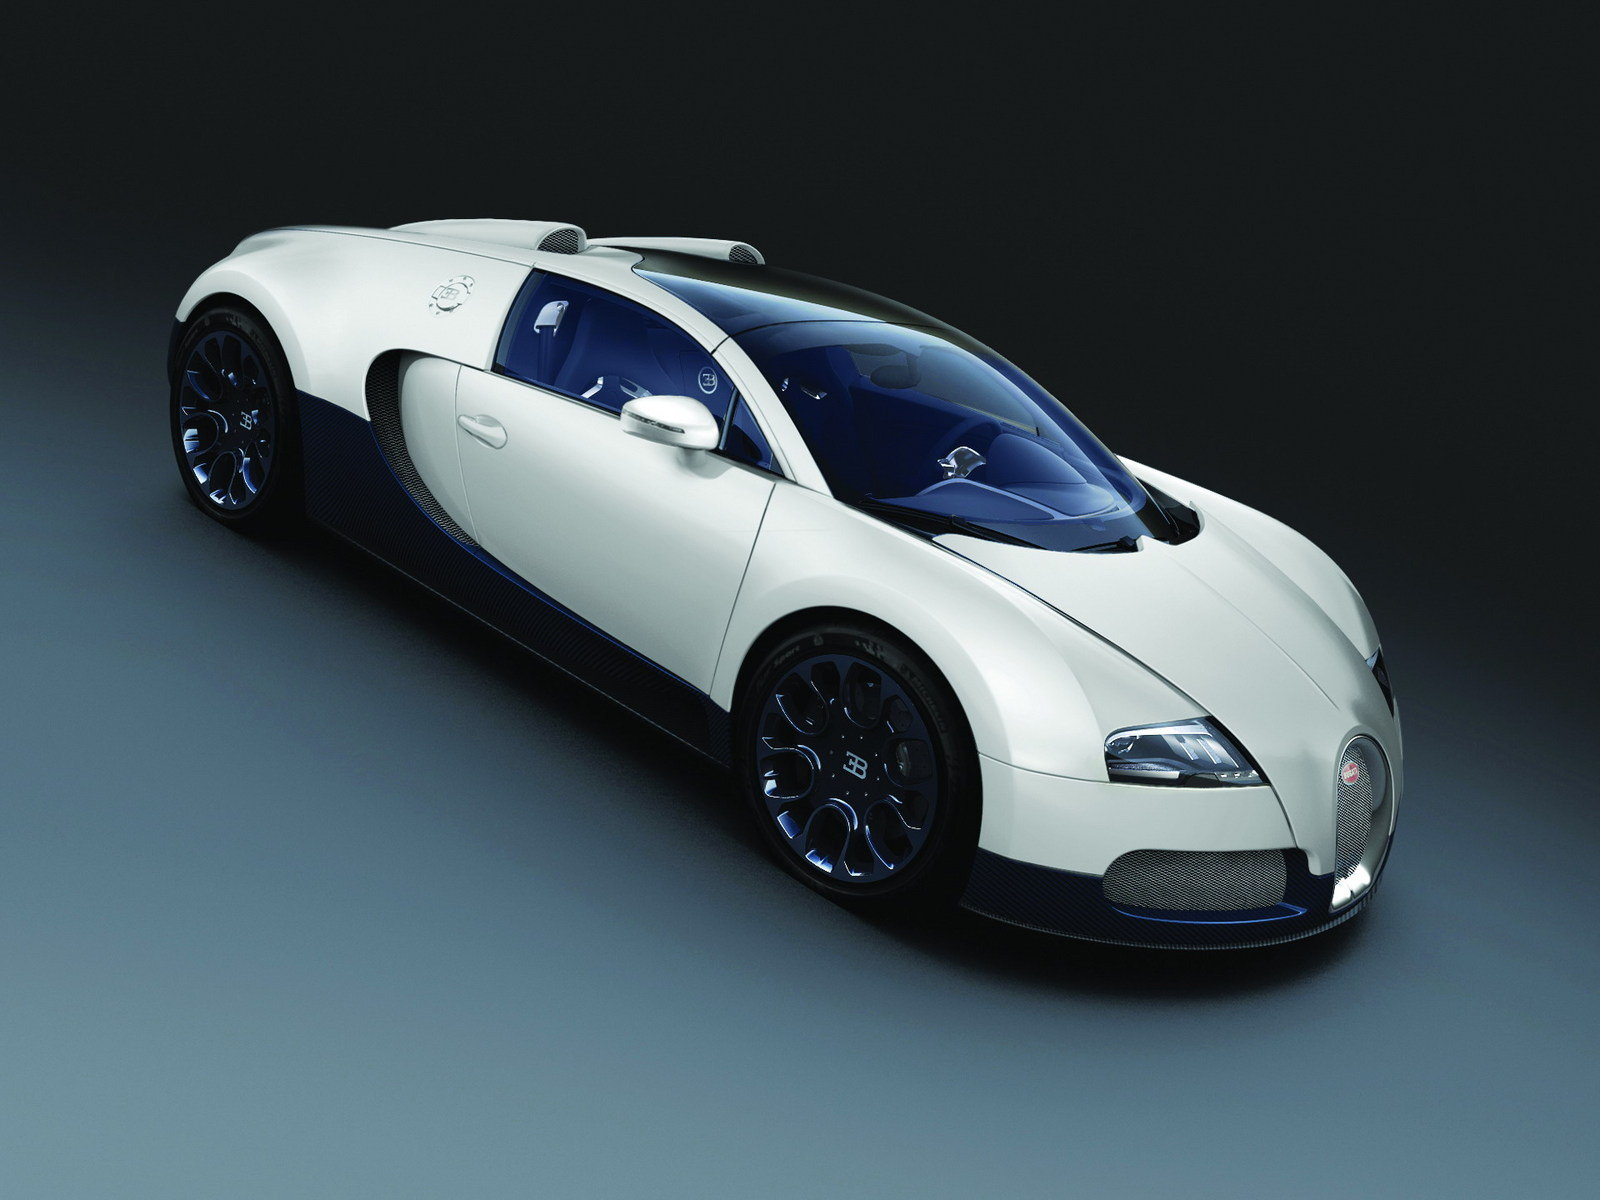 2011 bugatti veyron grand sport matte white picture. Black Bedroom Furniture Sets. Home Design Ideas